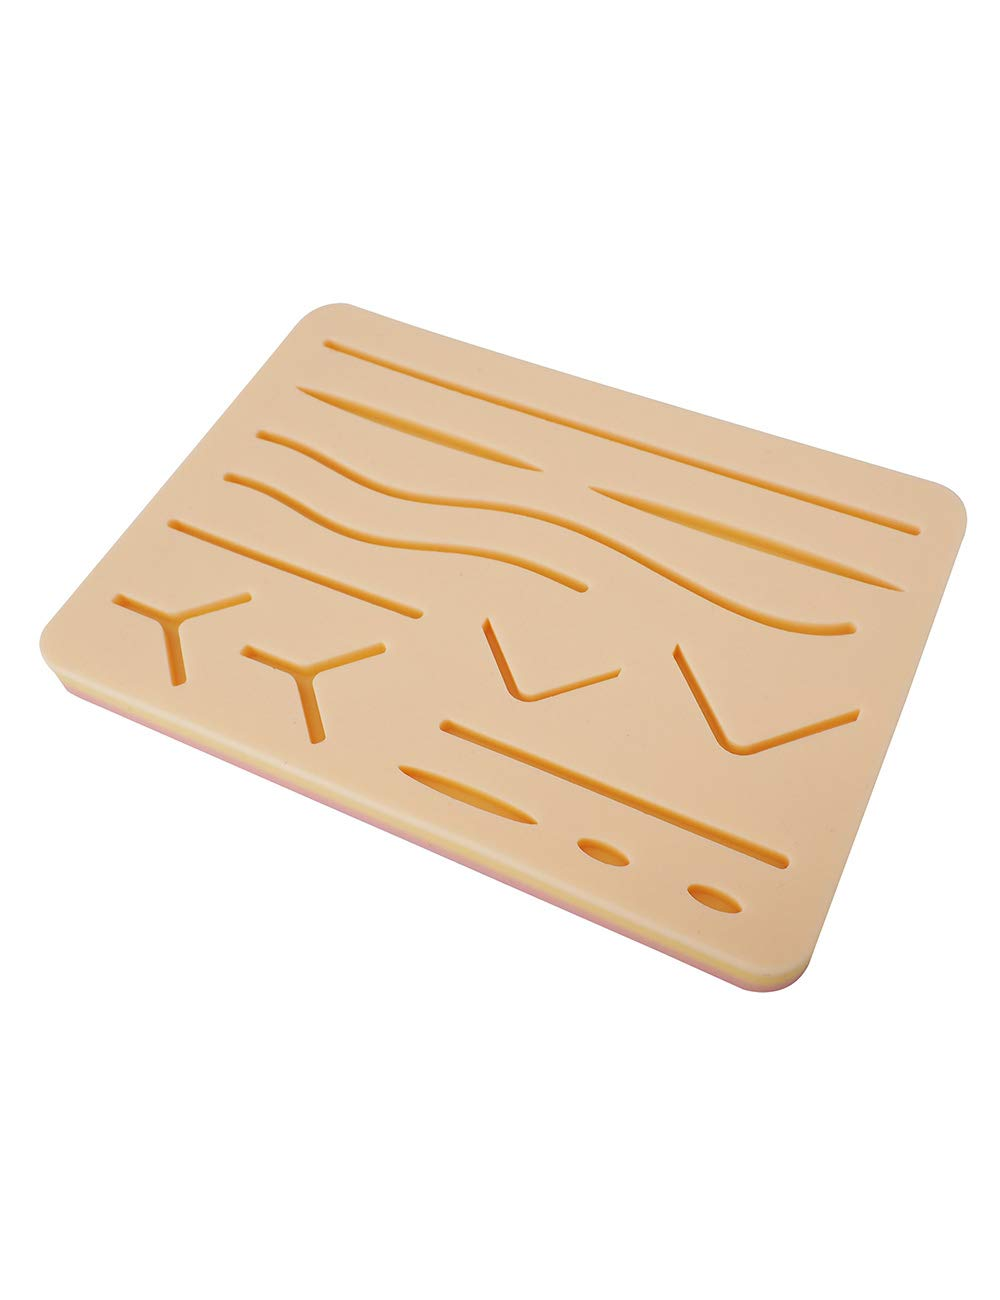 Upgraded Large 3-Layer Suture Pad with Wounds for Practicing Suturing - Not Easily Separate, Tear or Rip (with Anti-Slip Based)